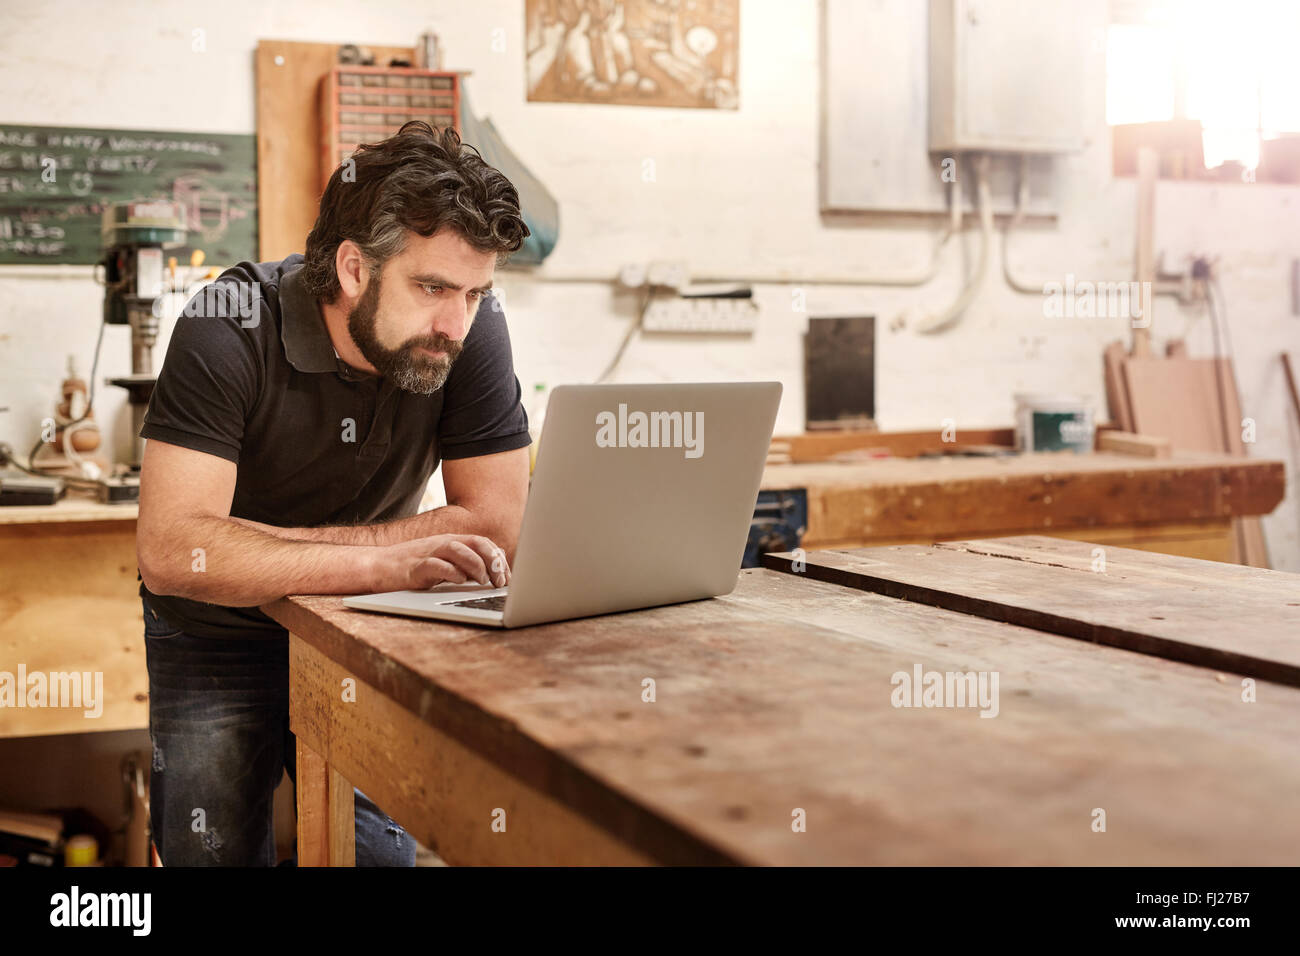 Small business owner in his workshop studio with laptop - Stock Image